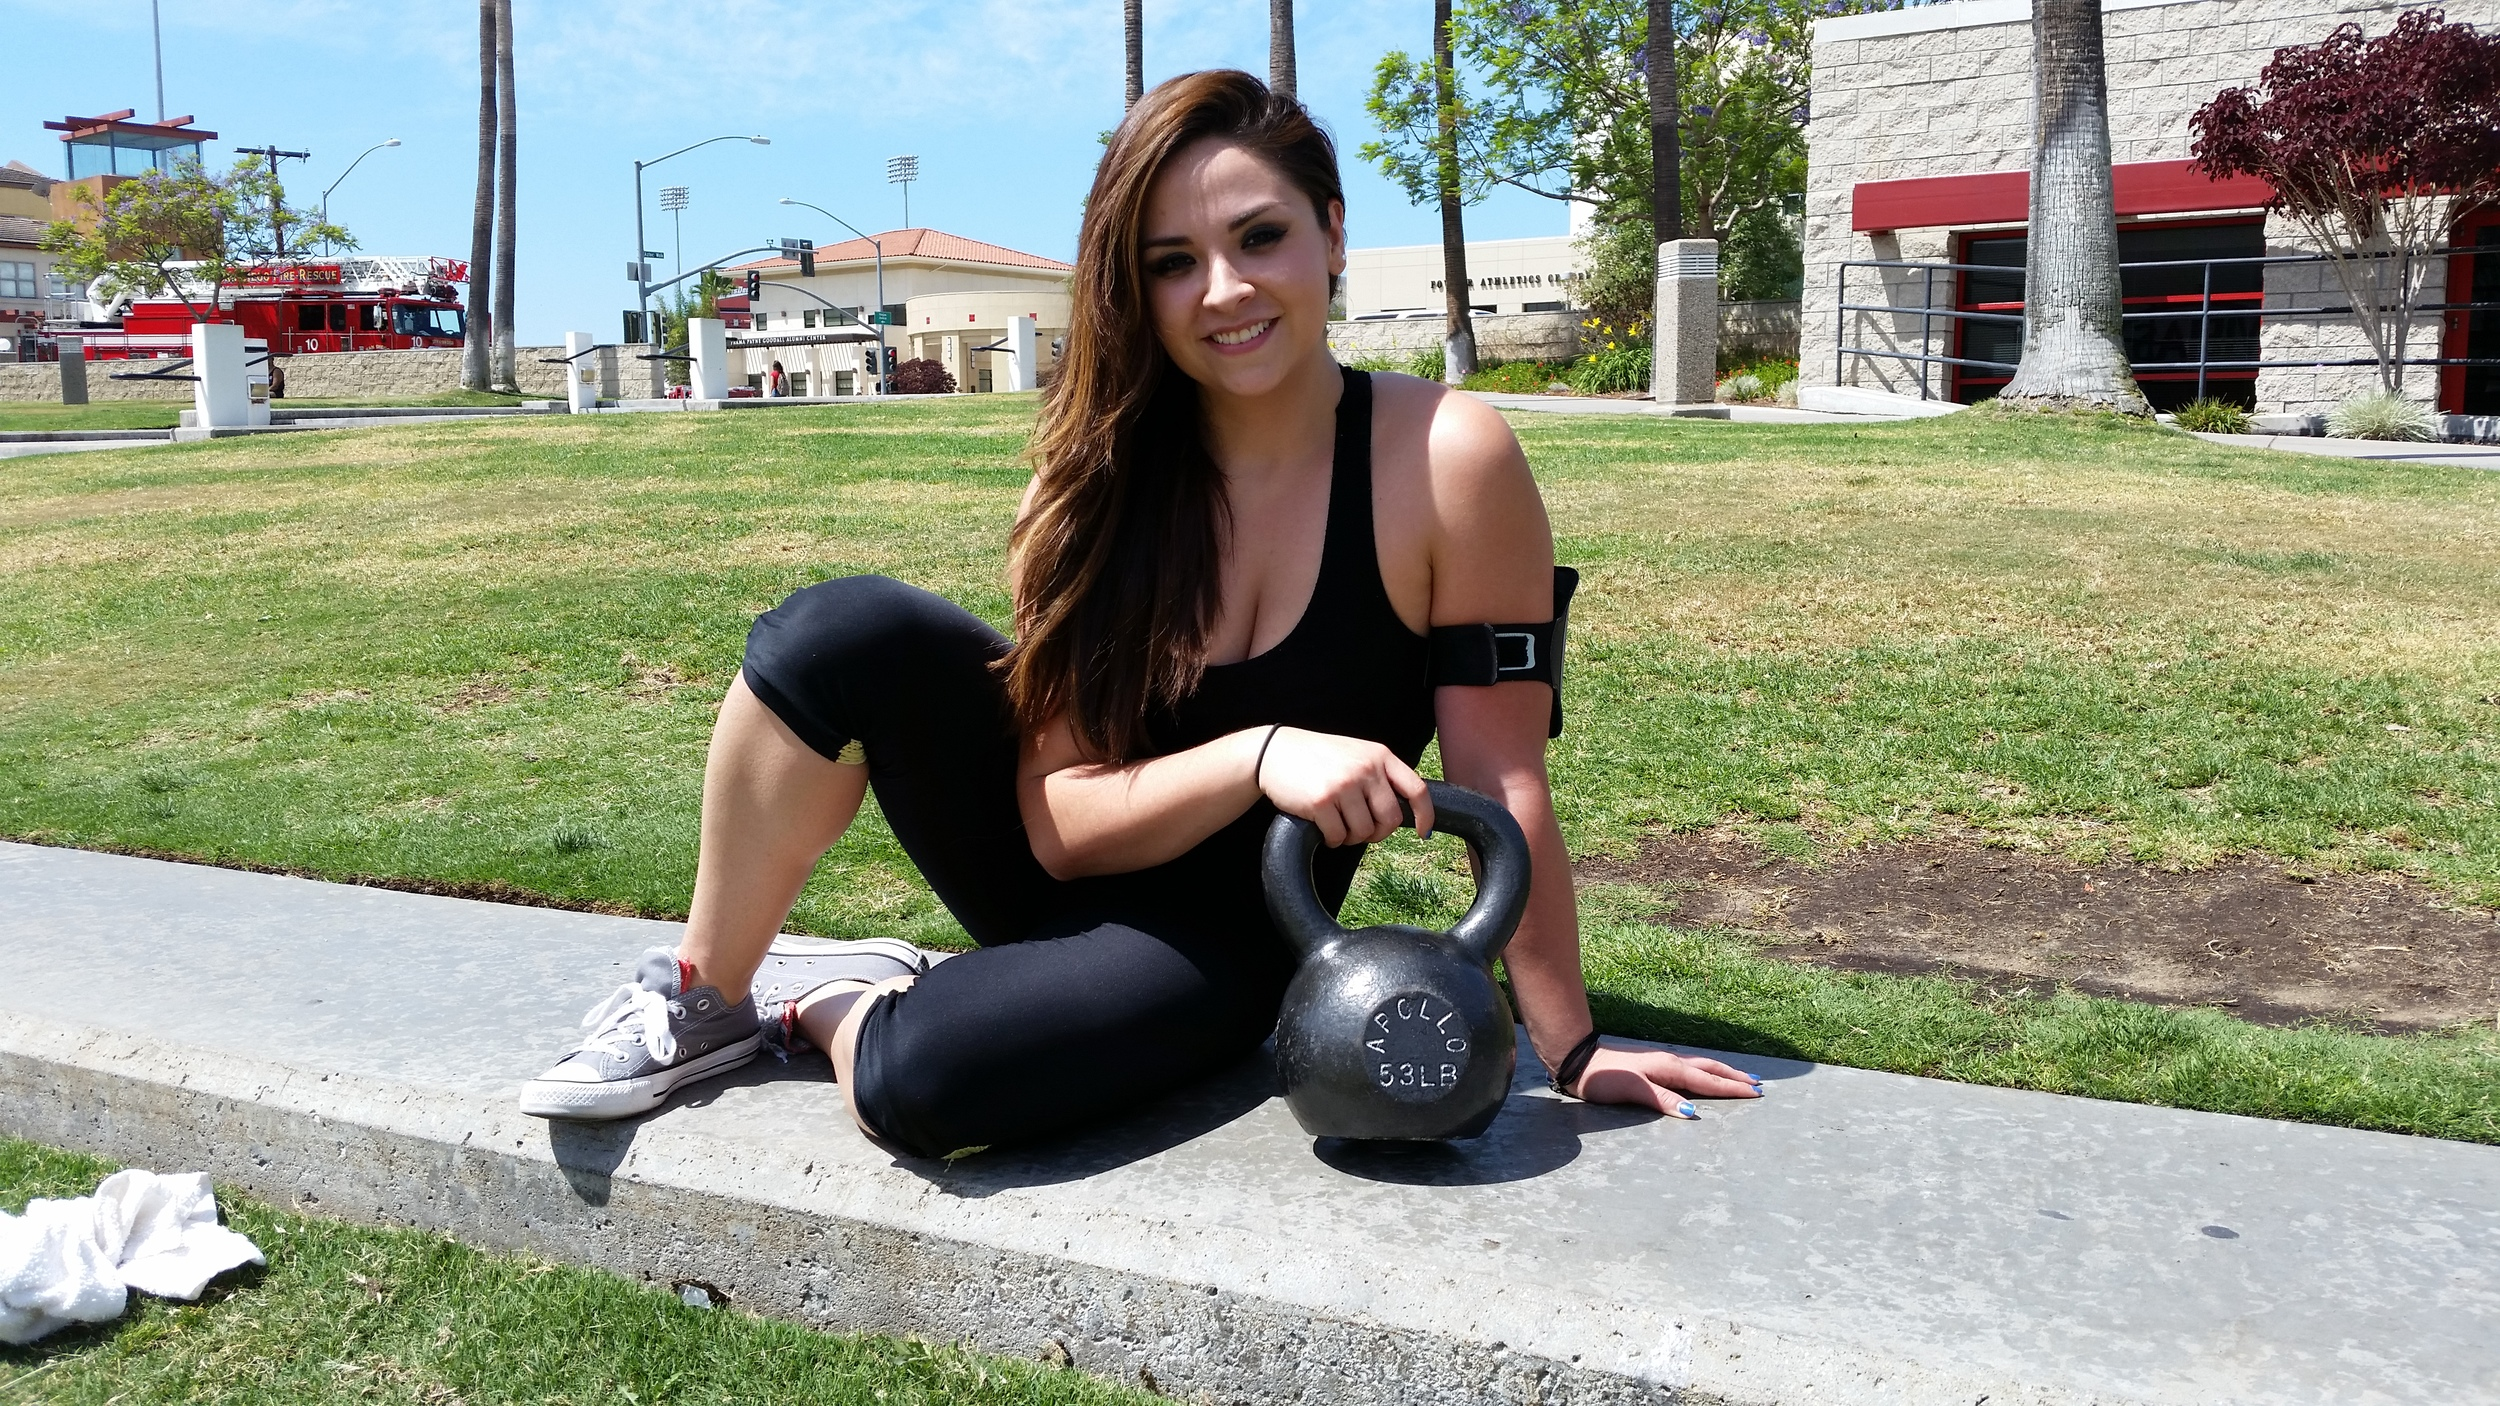 Candy likes to hang around outside with her favorite kettlebell before personal training workouts. ;-)